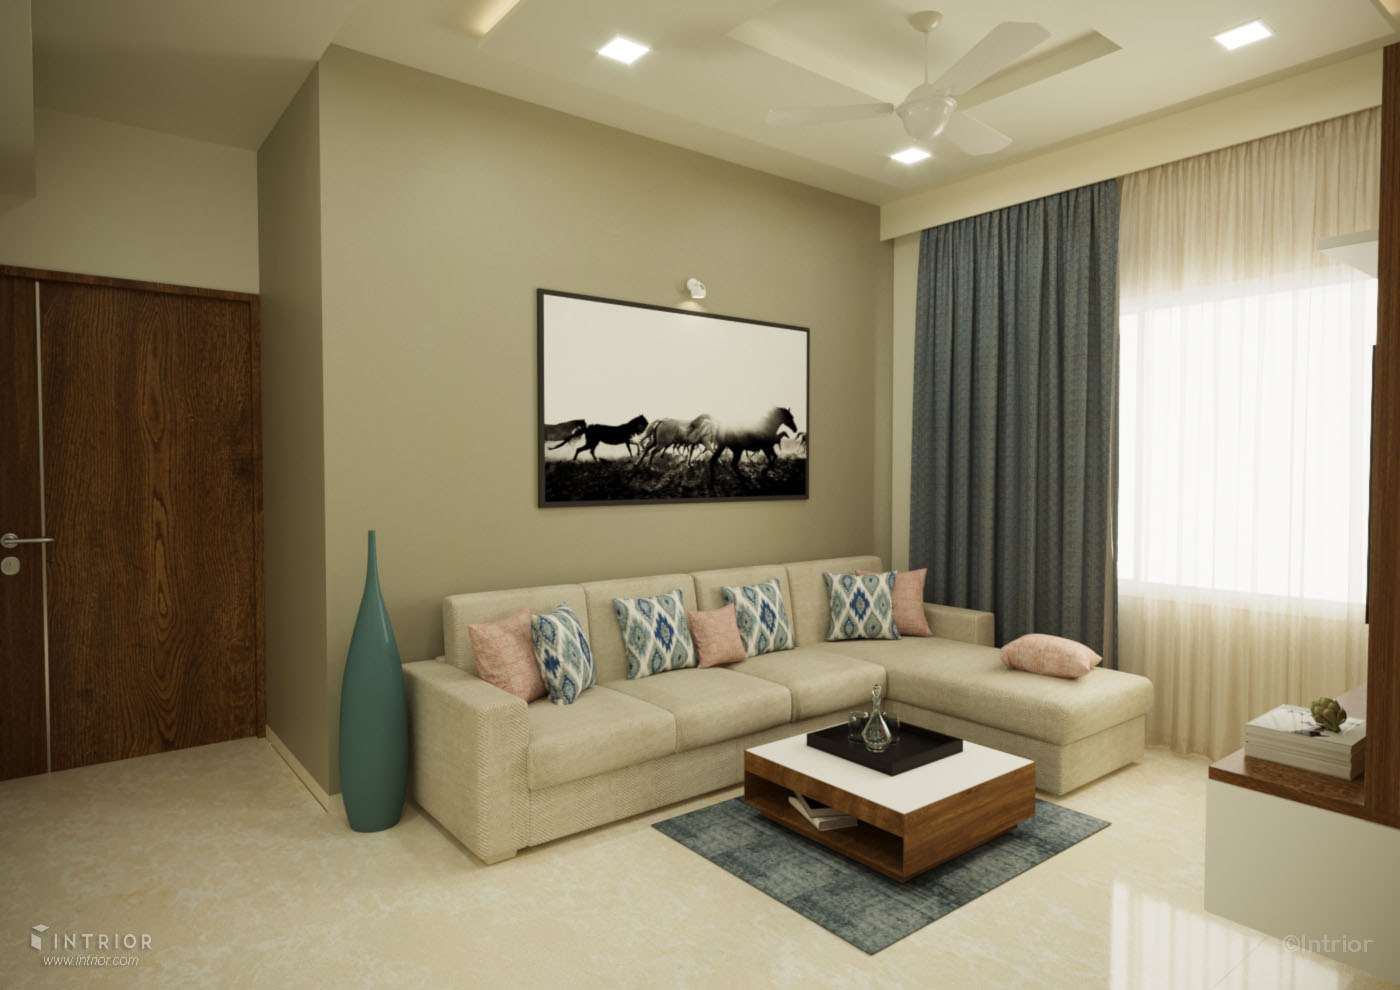 Living Room with sofa